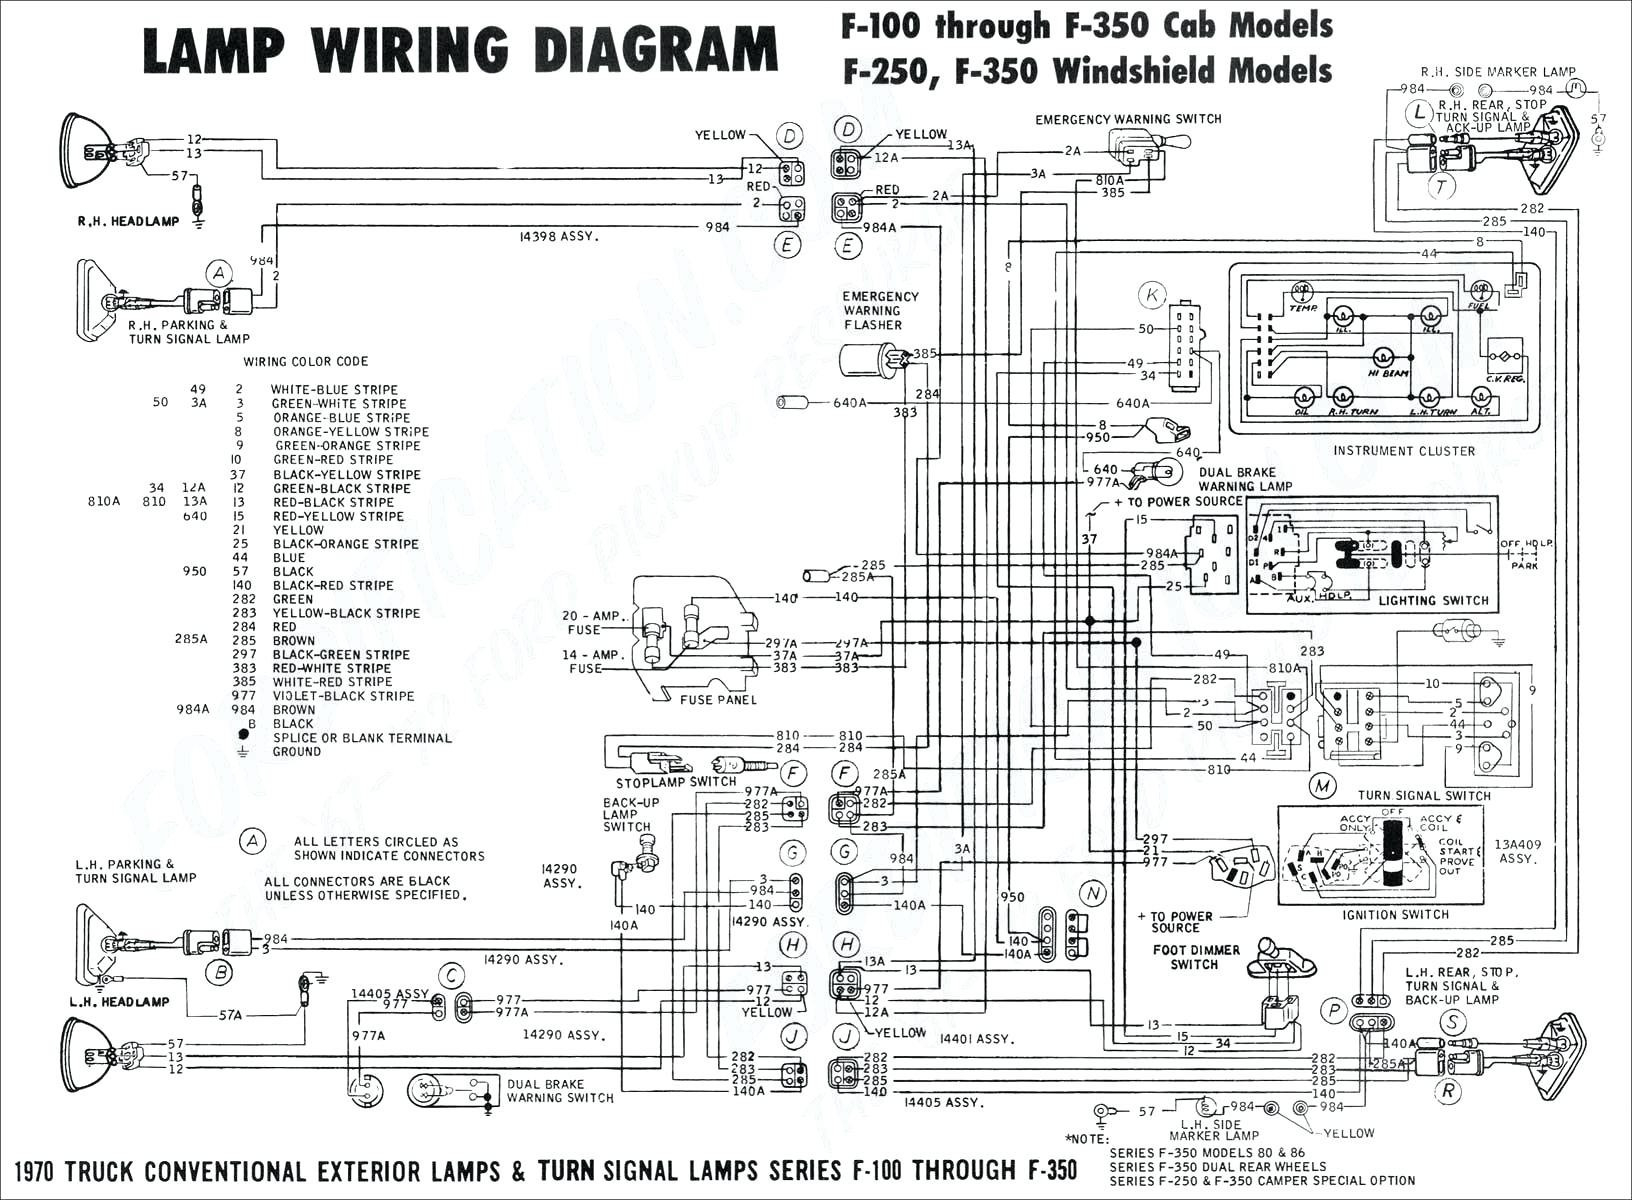 2004 Ford Ranger Cbc Fuse Diagram | Wiring Schematic Diagram  F Headlight Switch Wiring Diagram on 03 f150 fuse, 03 f150 accessories, 03 f150 6 inch lift, 03 f150 suspension, 03 f150 parts diagram, 03 f150 frame, 03 f150 ignition switch, 03 f150 wiper motor, 03 f150 engine, 03 f150 starter,